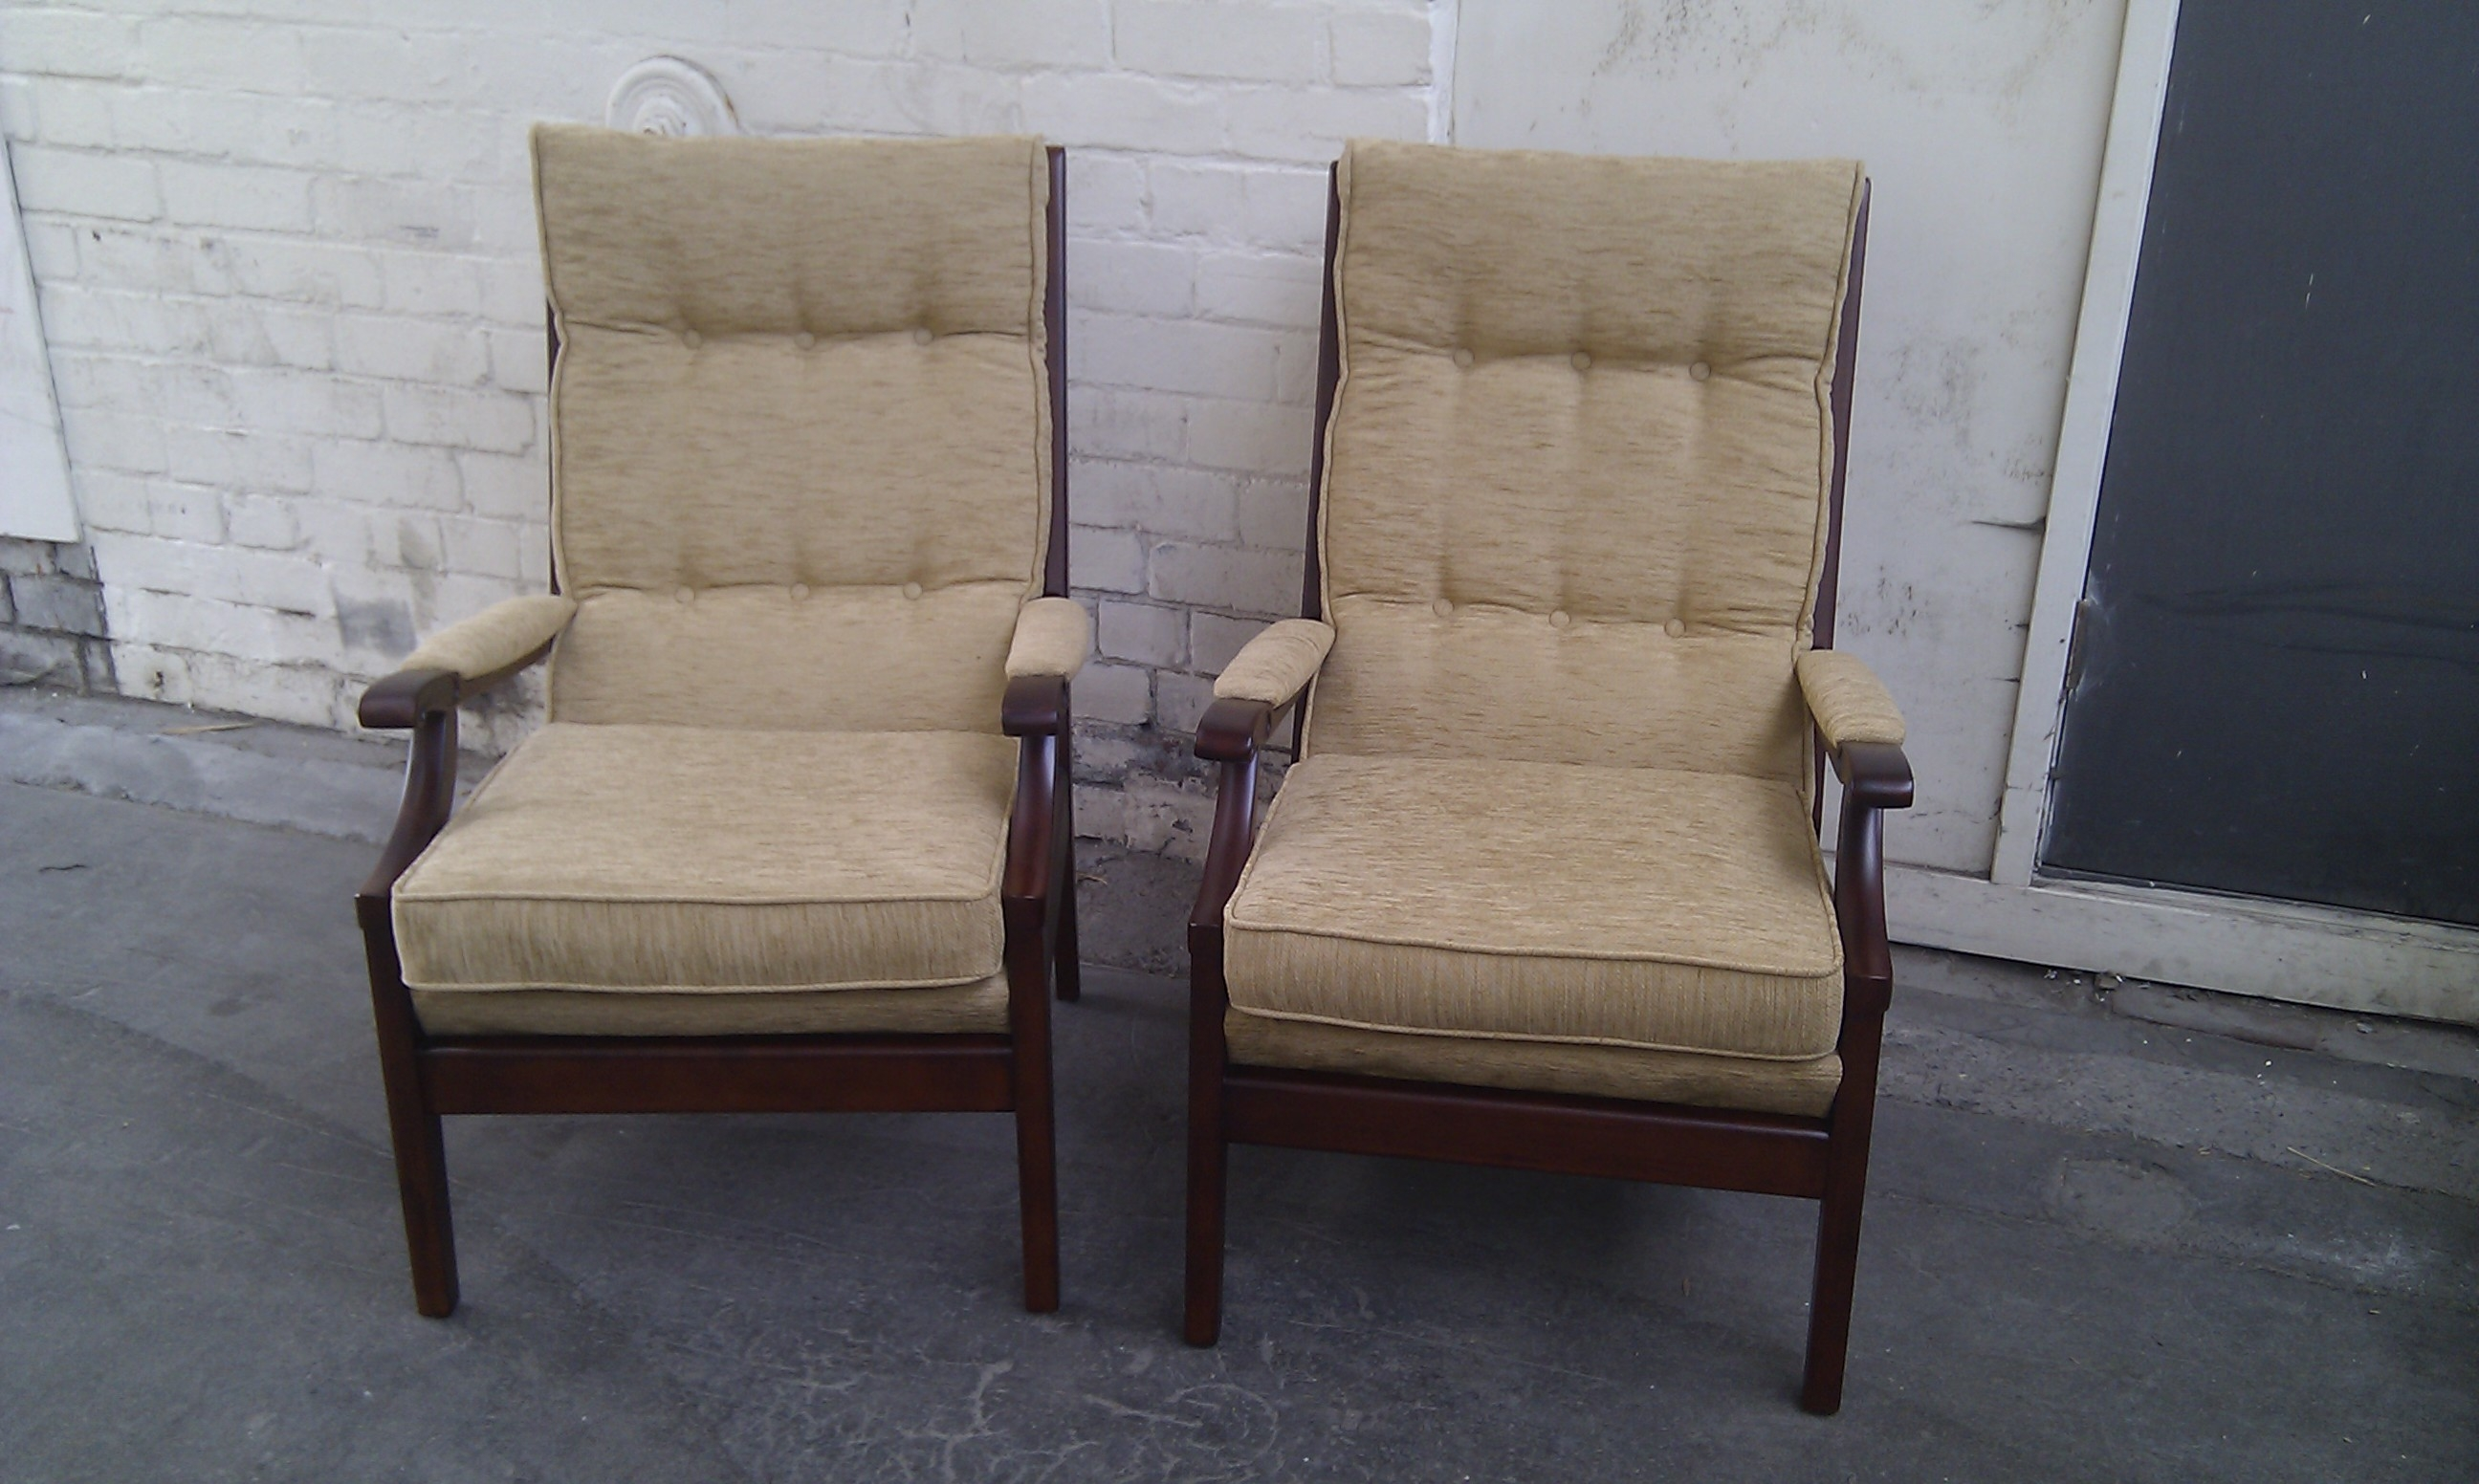 Amazing Elite Cintique Armchairs In Cintique Abbey Upholstery And French Polishing Leeds (Image 1 of 15)